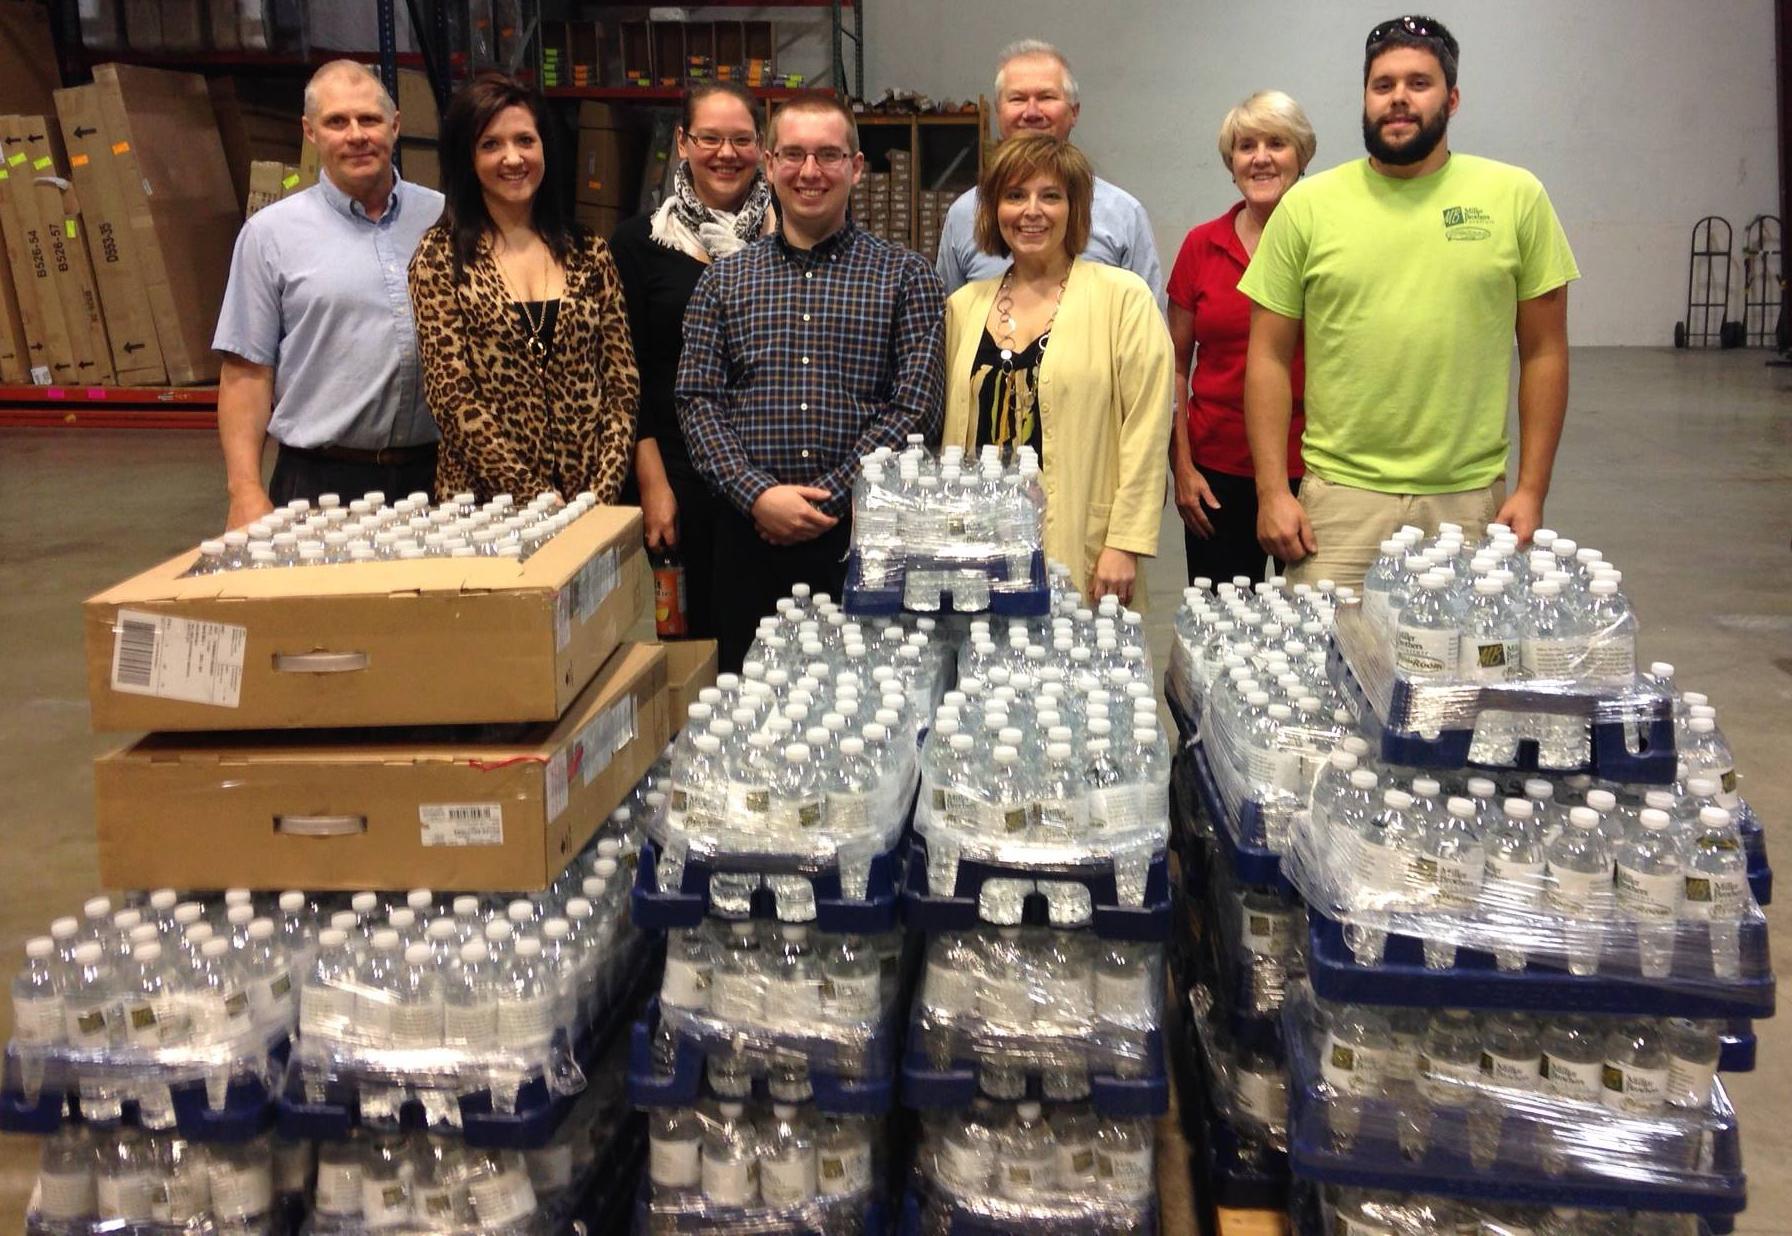 Miller Brothers team donating waterbottles